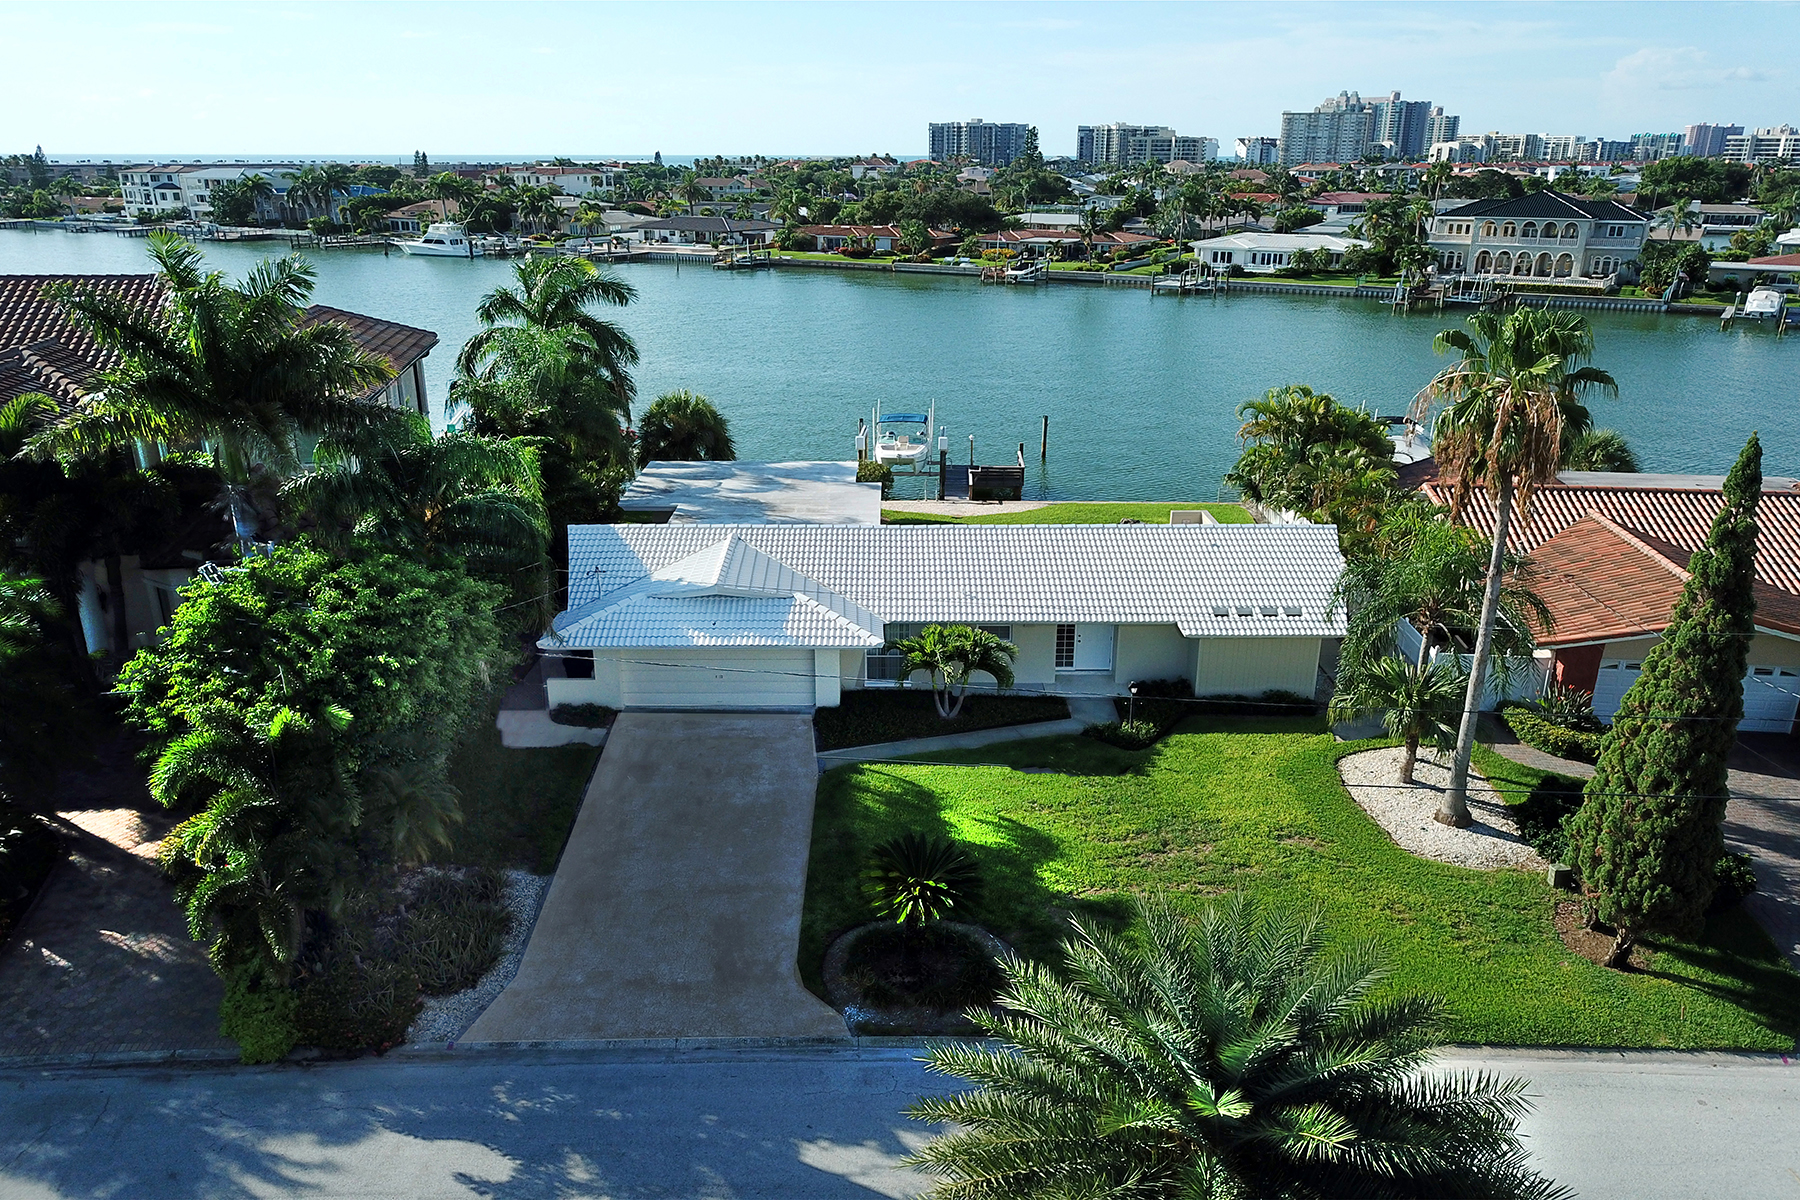 Single Family Homes for Active at 2236 Donato Dr Belleair Beach, Florida 33786 United States